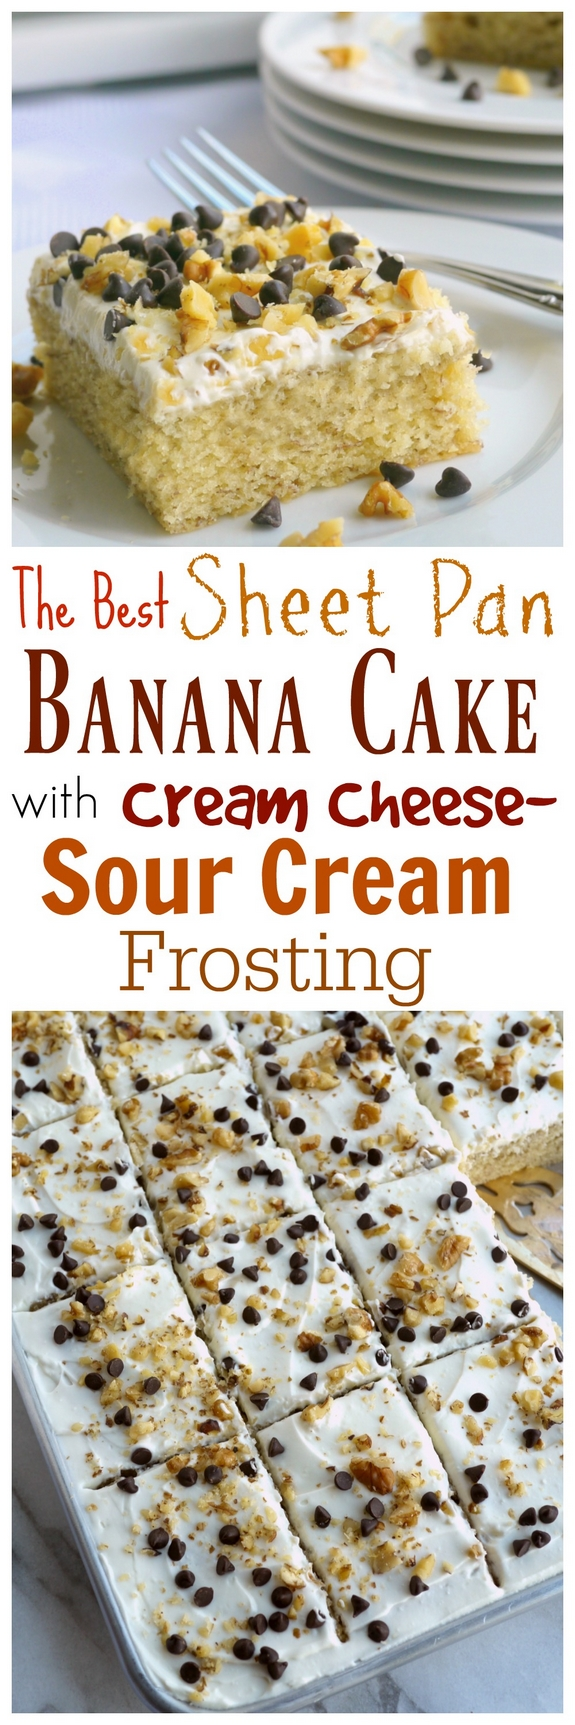 The Best Sheet Pan Banana Cake with Sour Cream-Cream Cheese Frosting